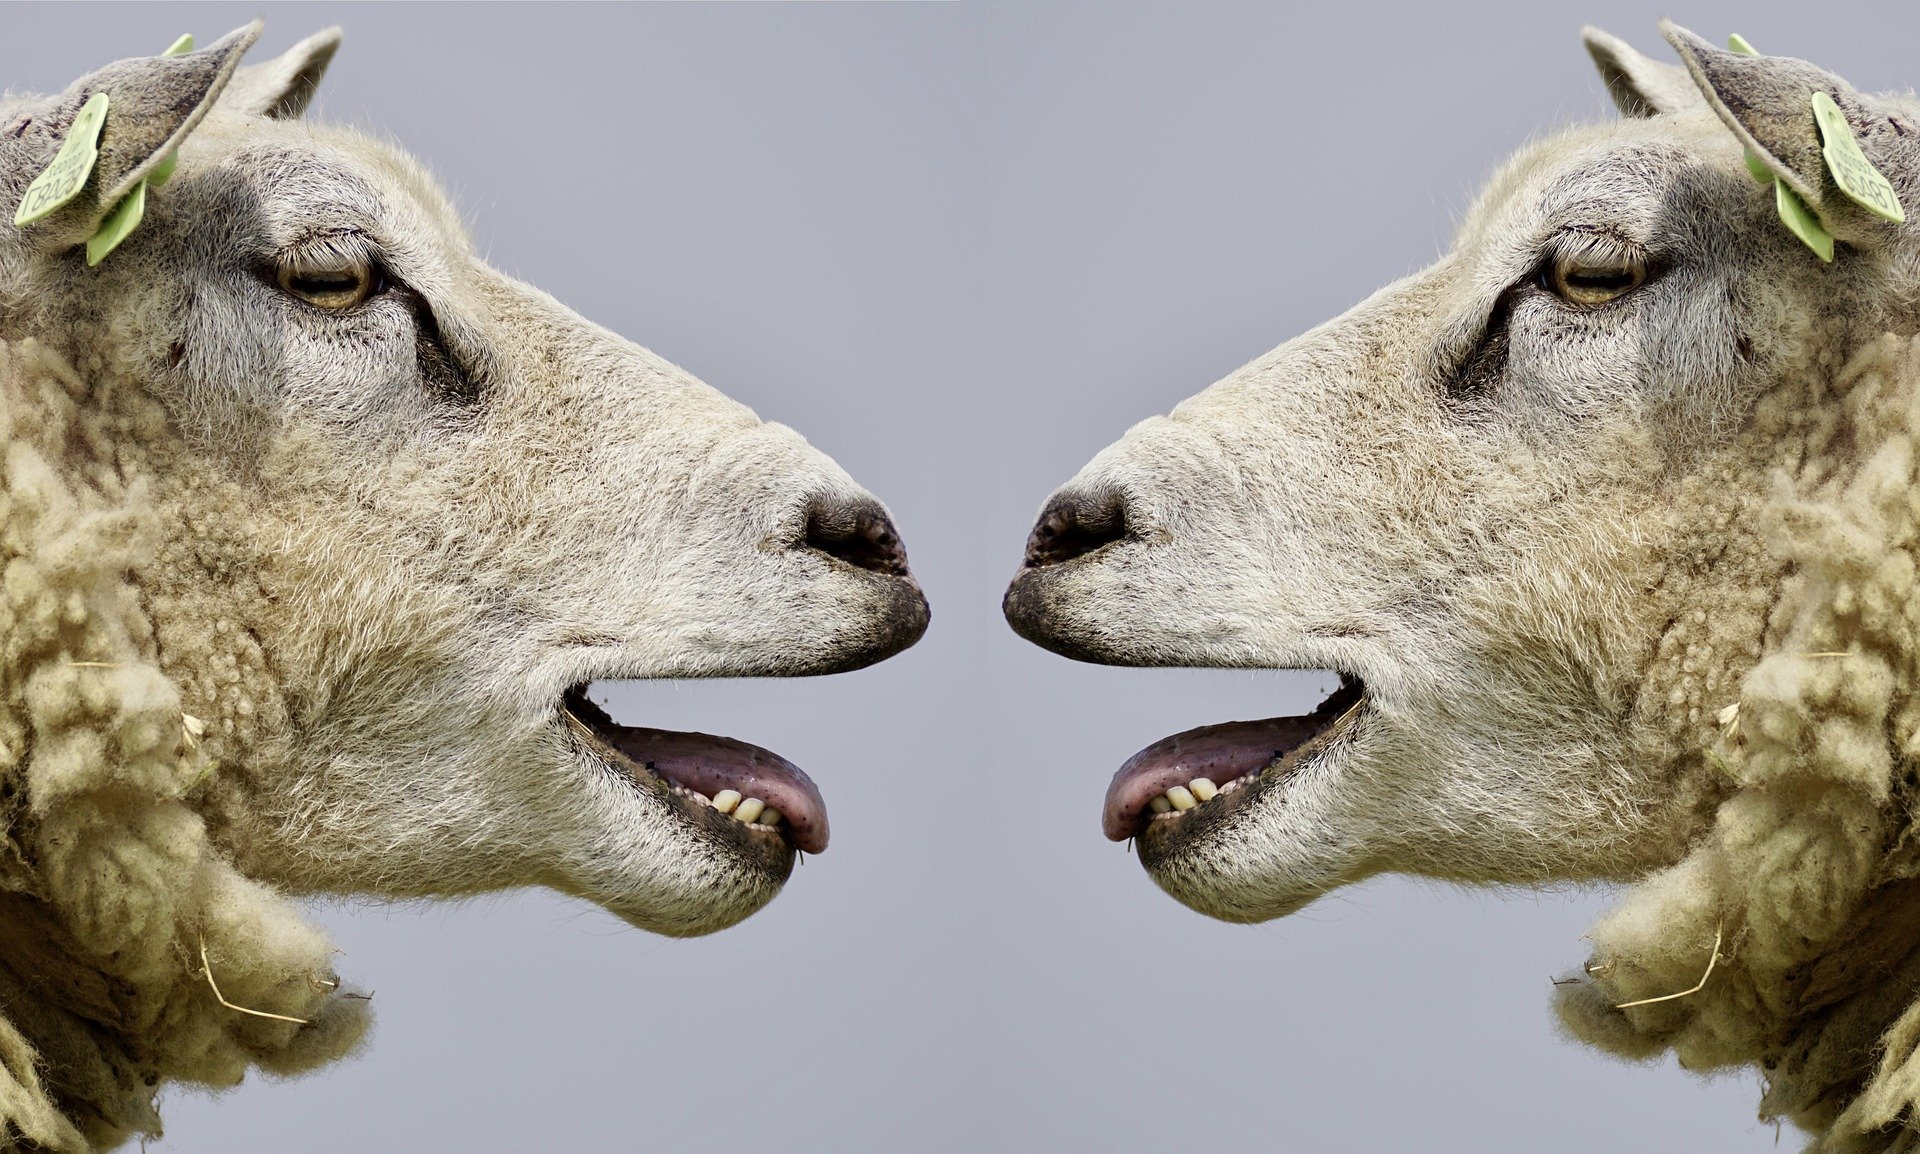 Two sheep opposite of each other